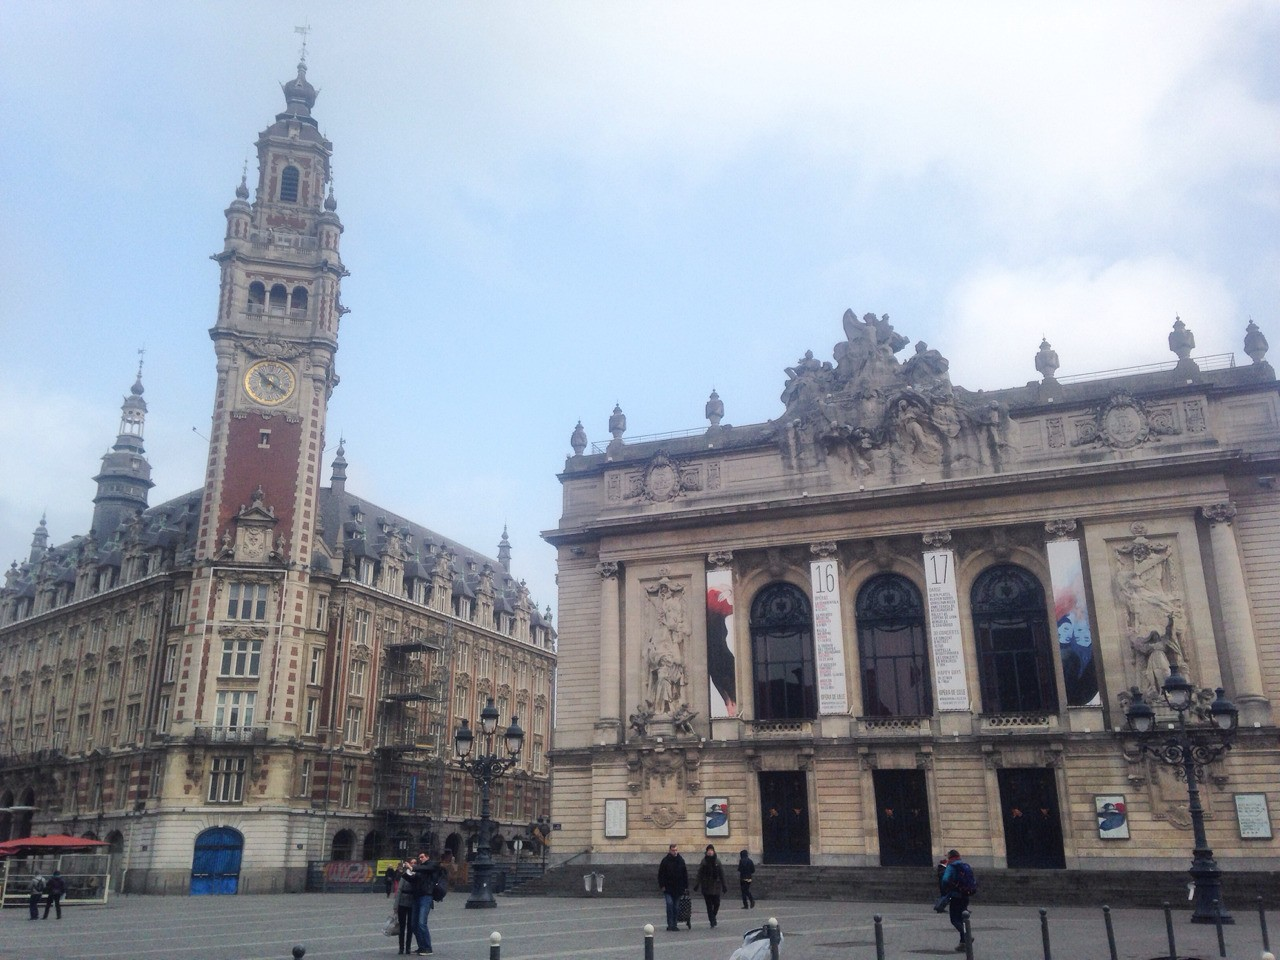 Lille, the city in the north of France. Border to Brussel and another city in Belgium. Beautiful city and huge city center square.